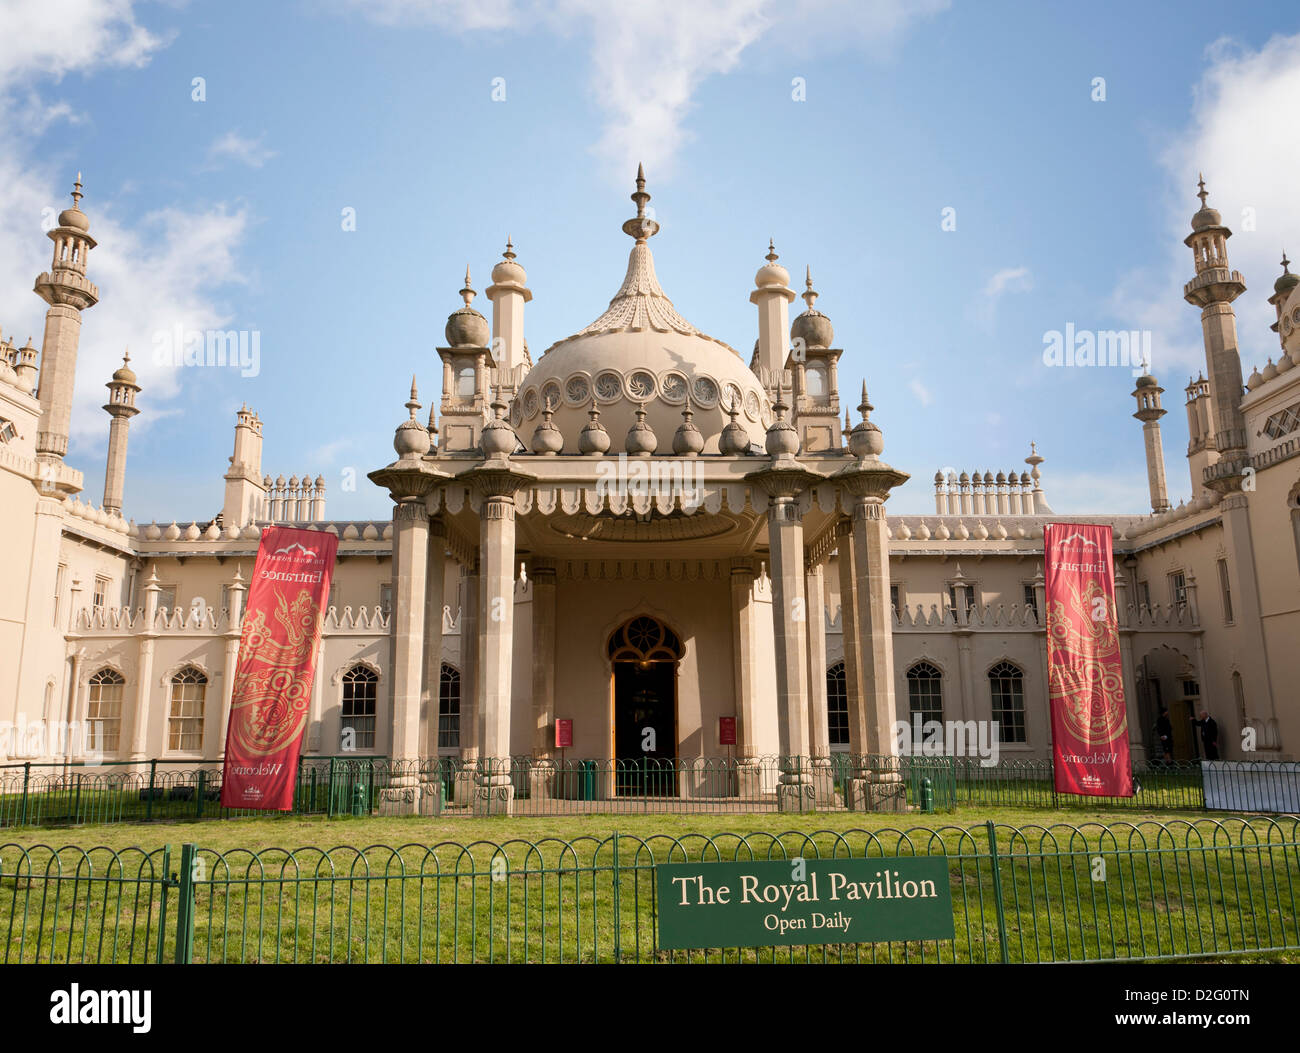 Entrance to the historic old Royal Pavilion in Brighton, West Sussex, England, UK - Stock Image